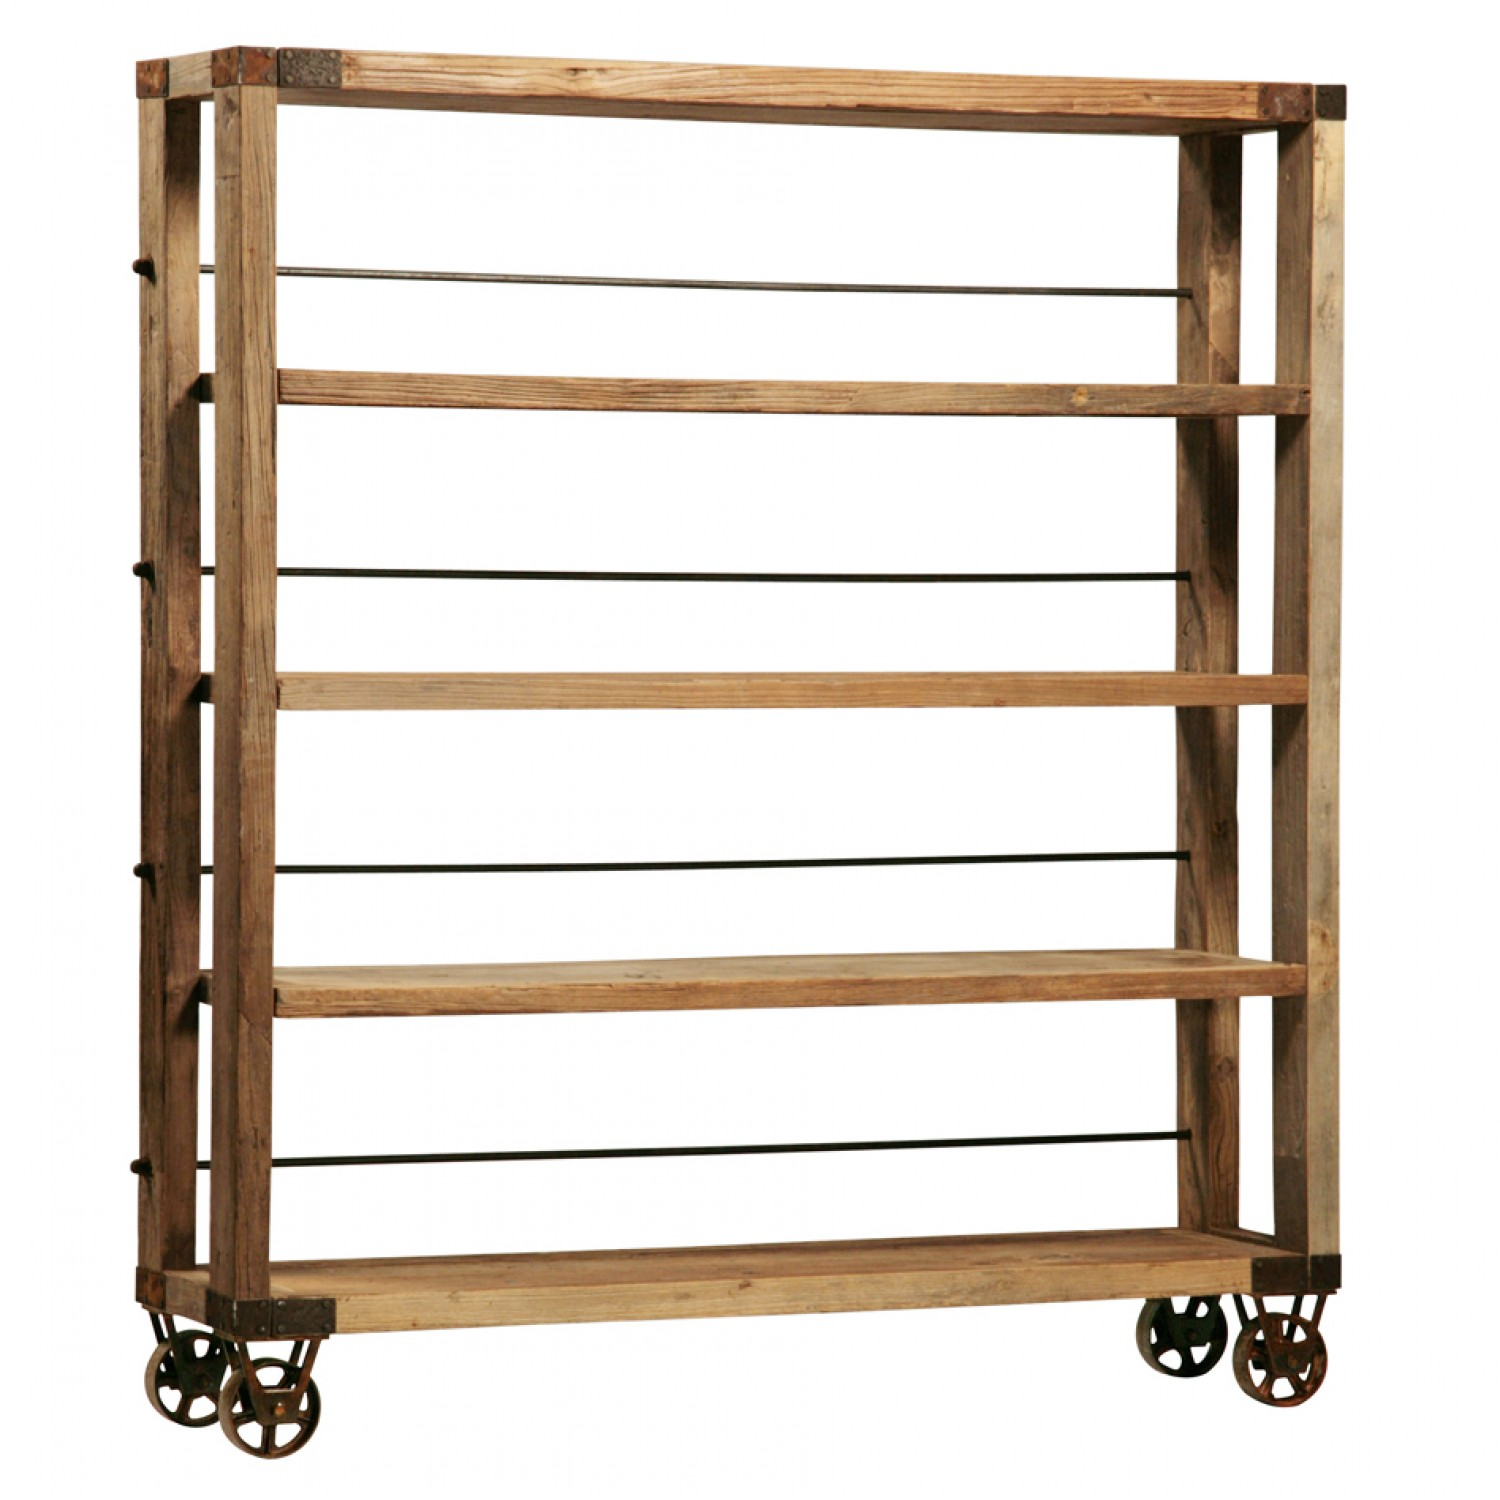 Image of: Reclaimed wood bookcase with wheels